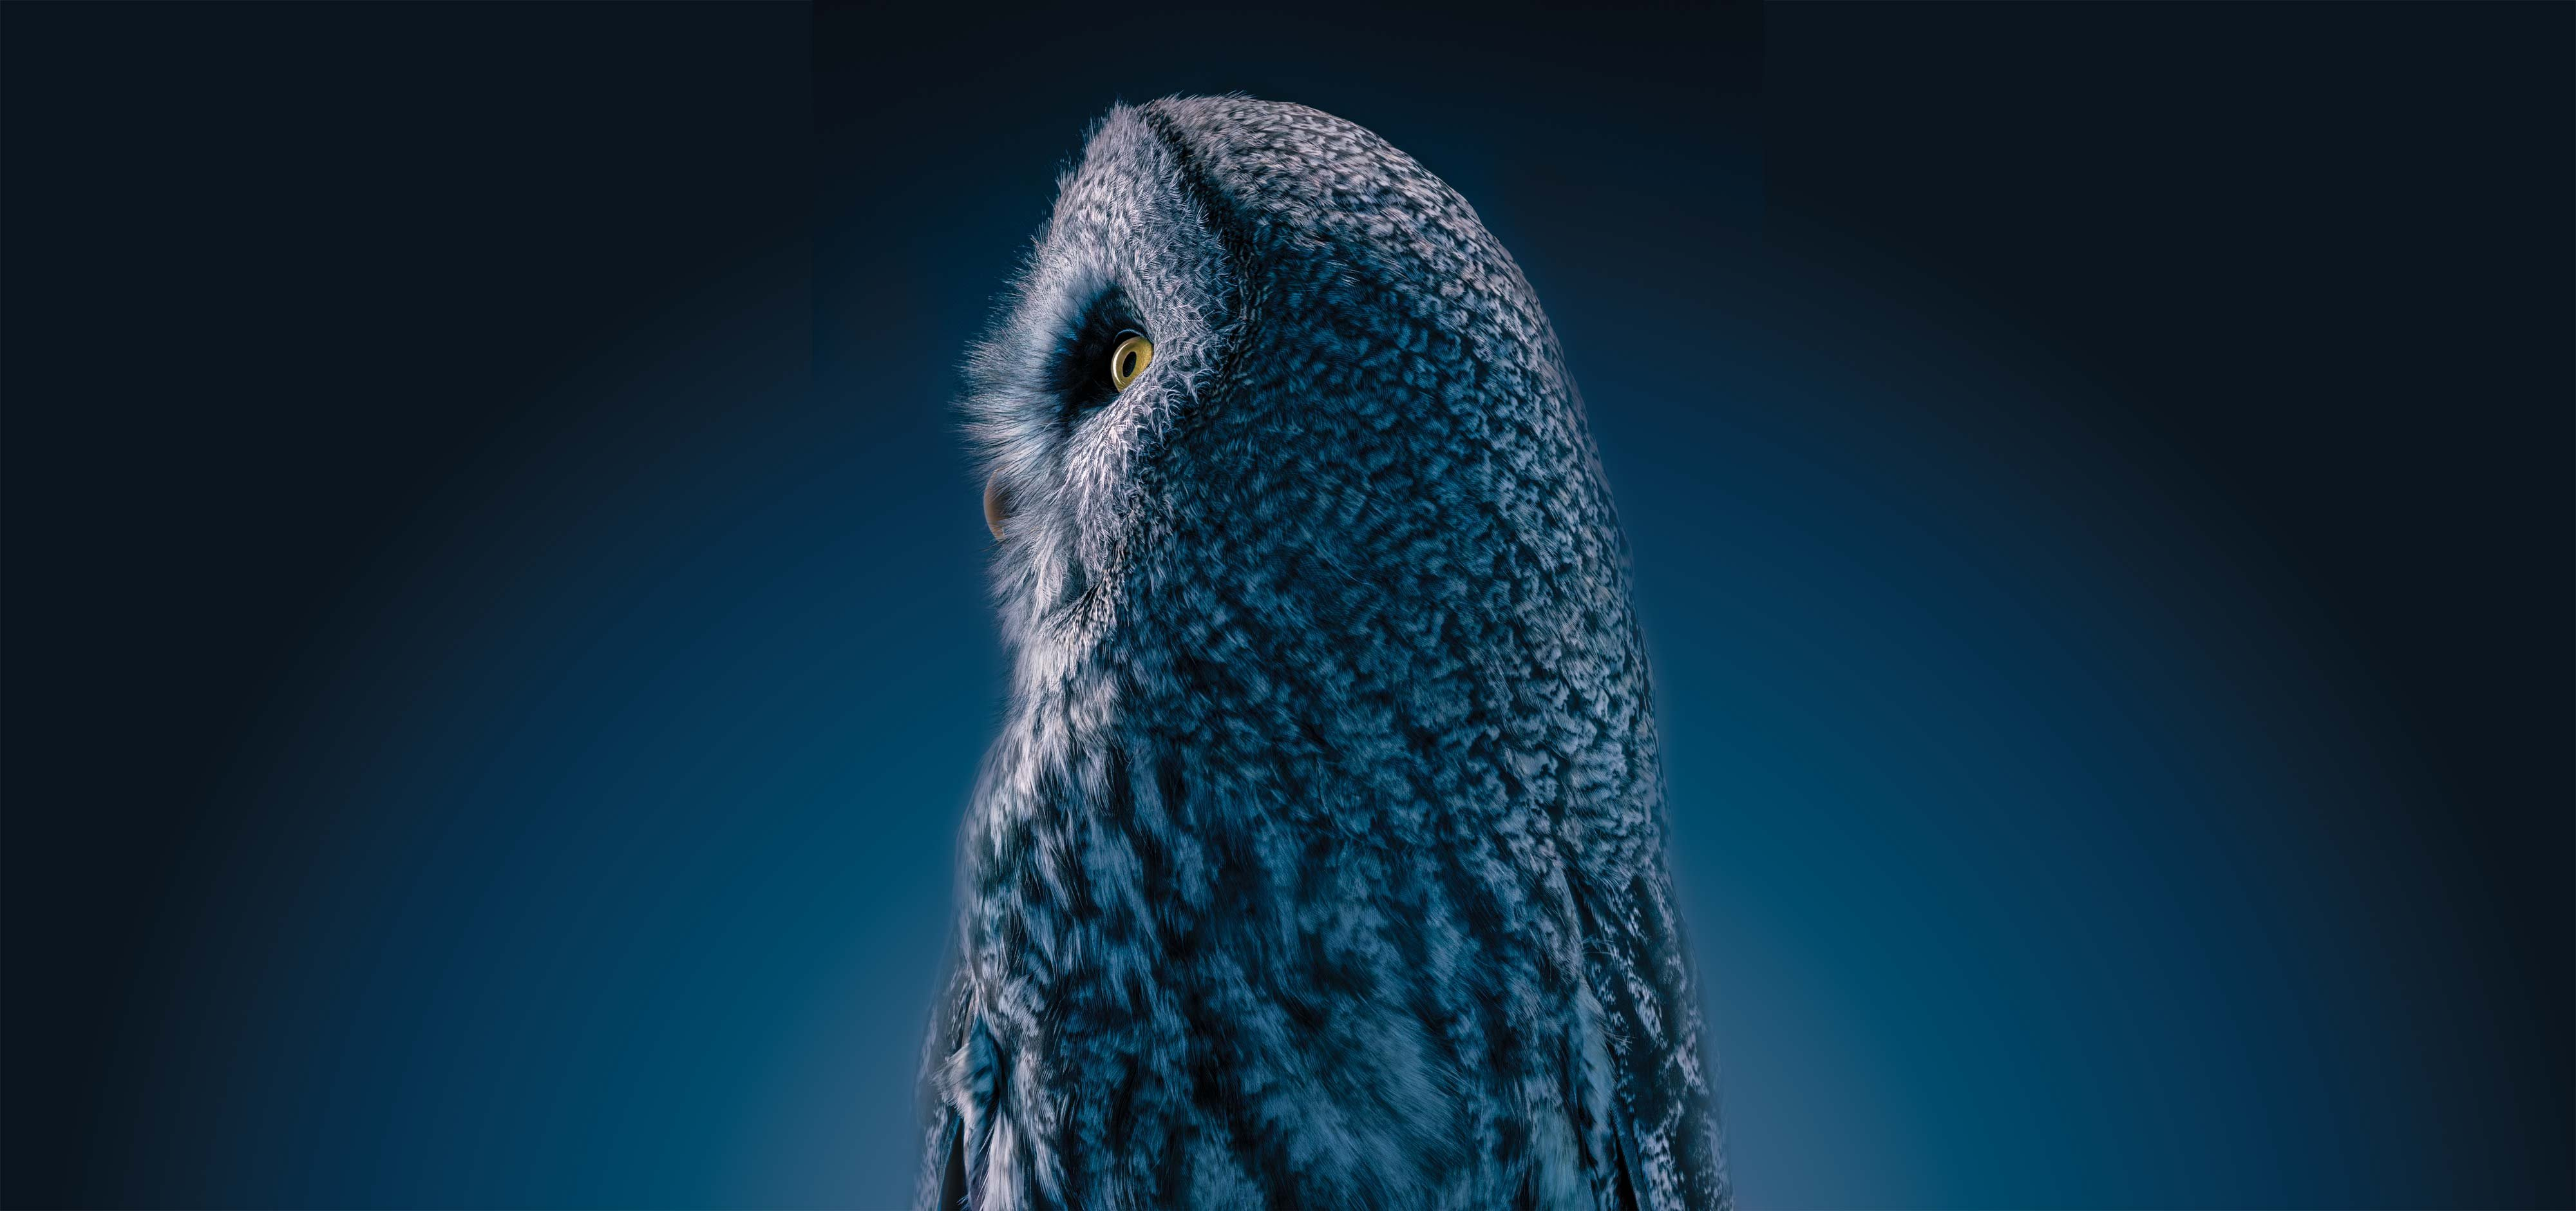 Tim Flach/Getty Images